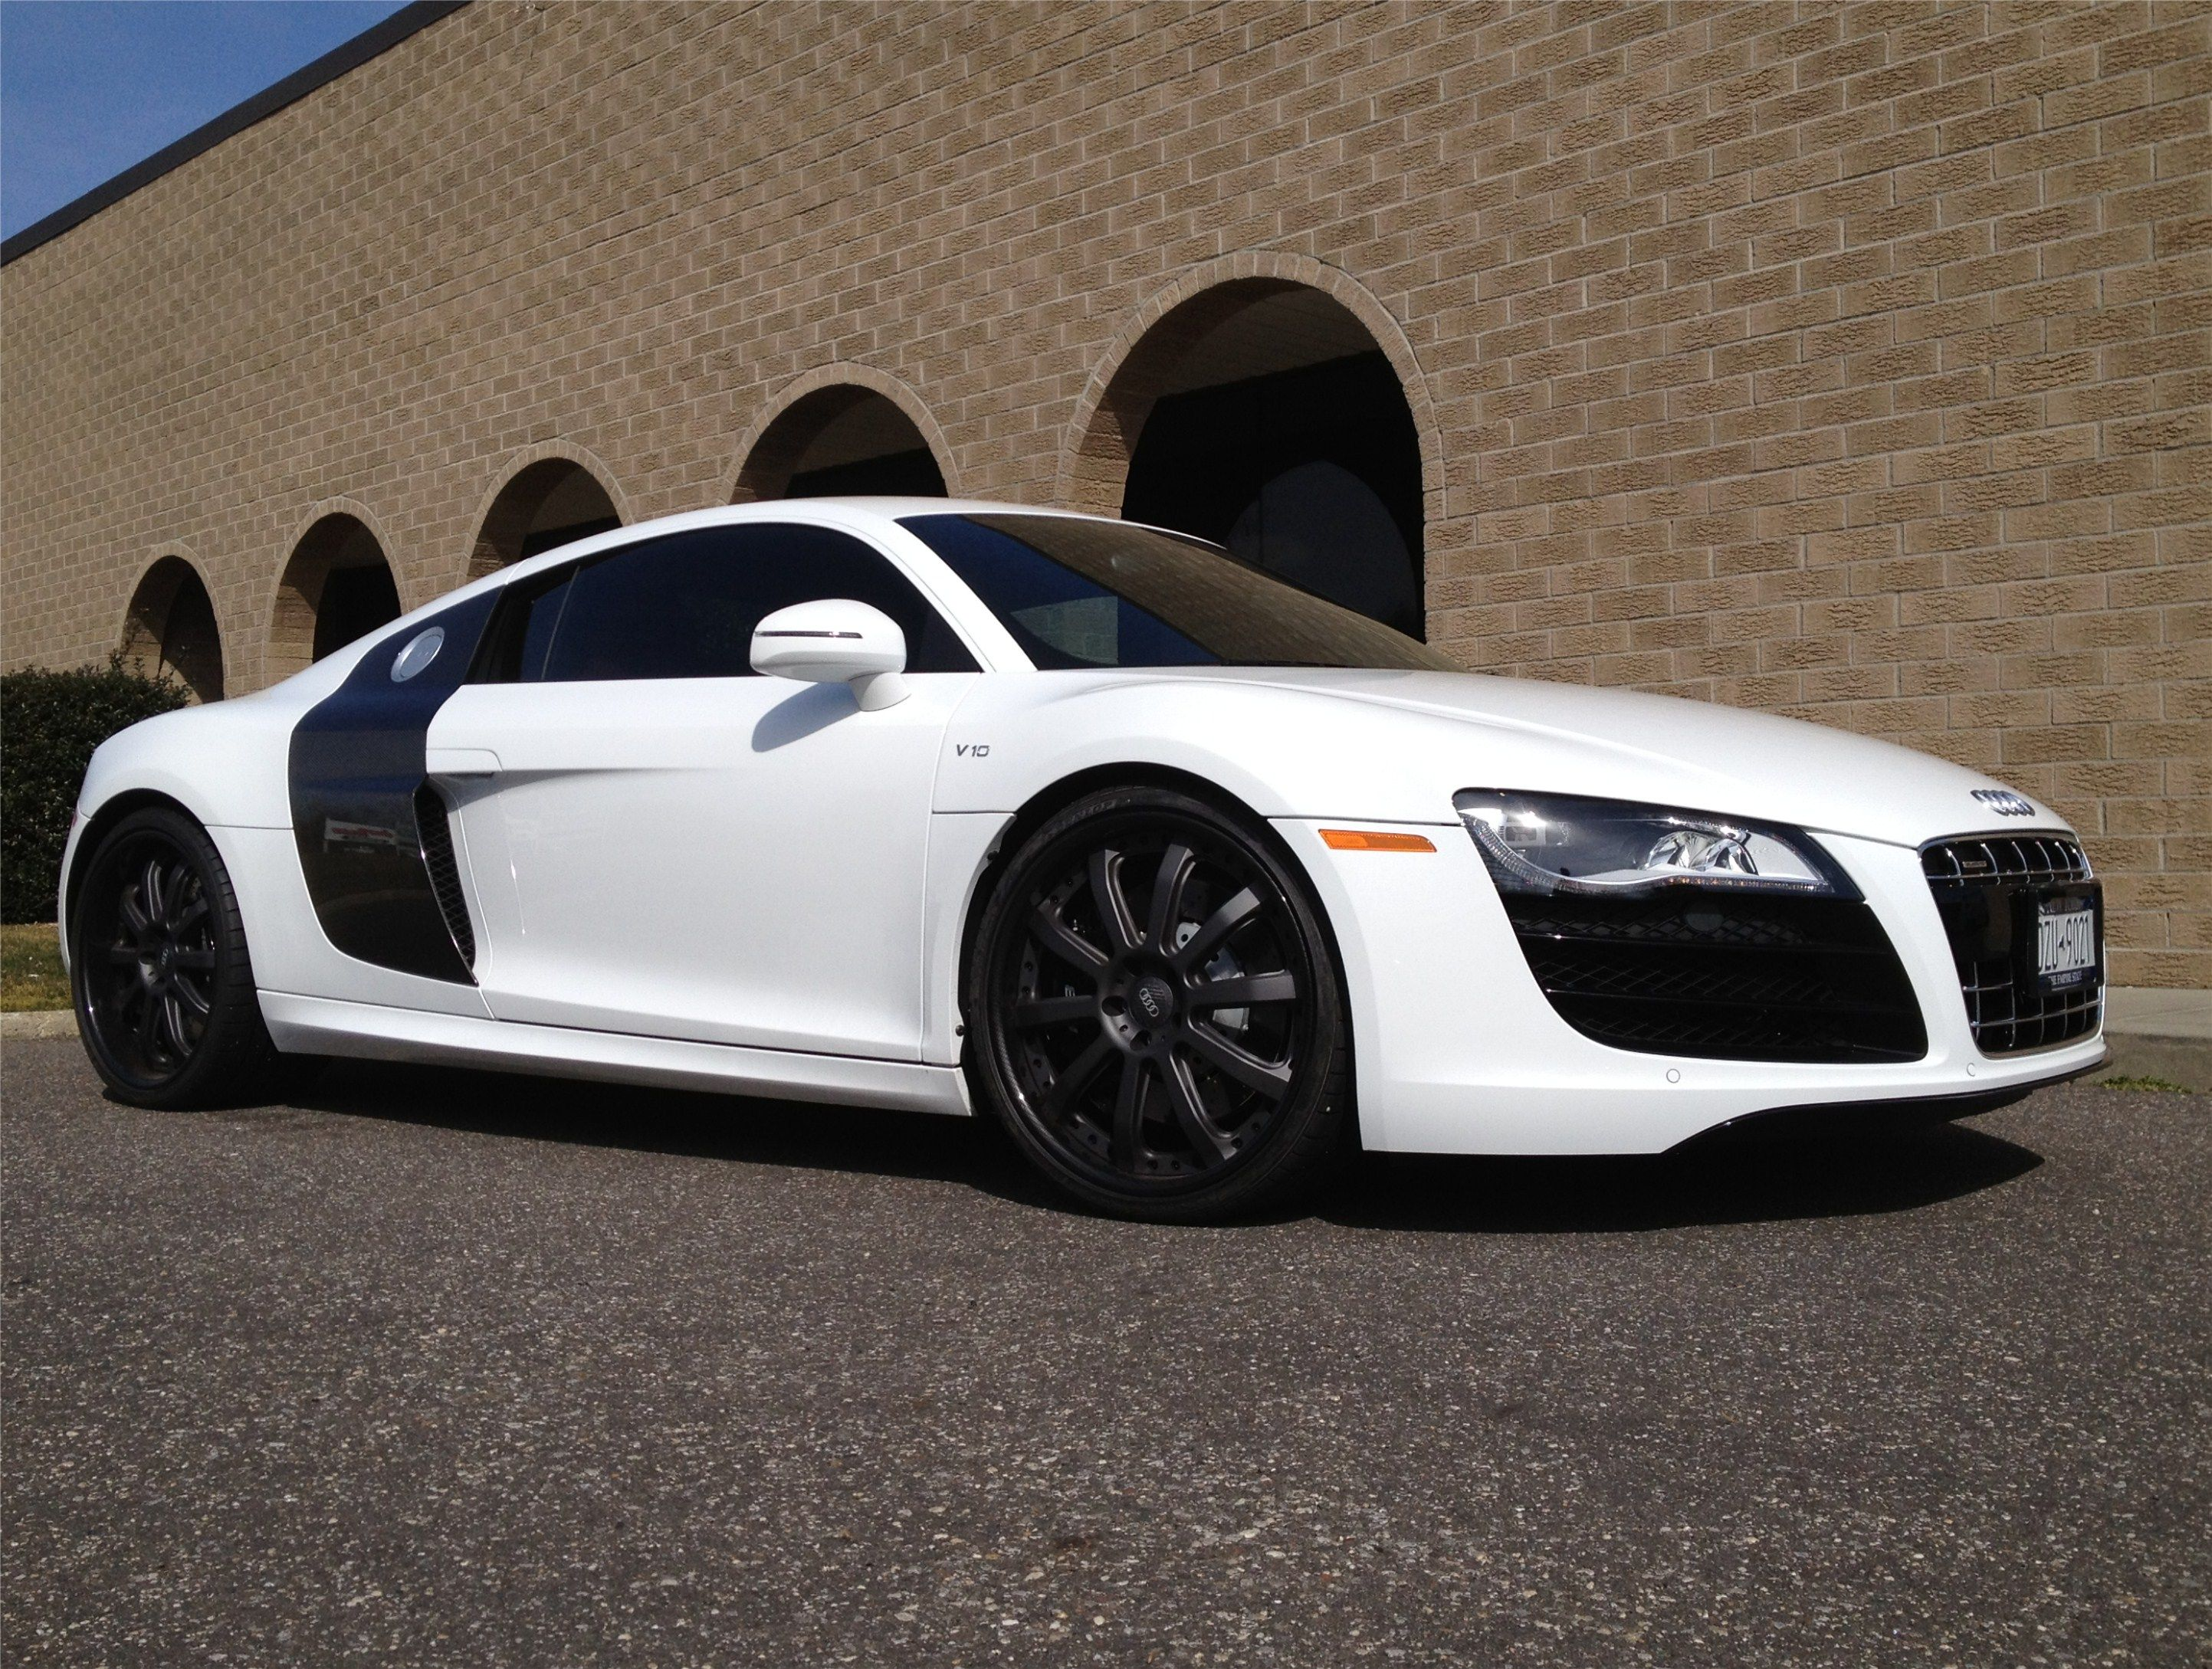 2006 White Audi R8 with Black DUB X18 Palazzo Wheels ...